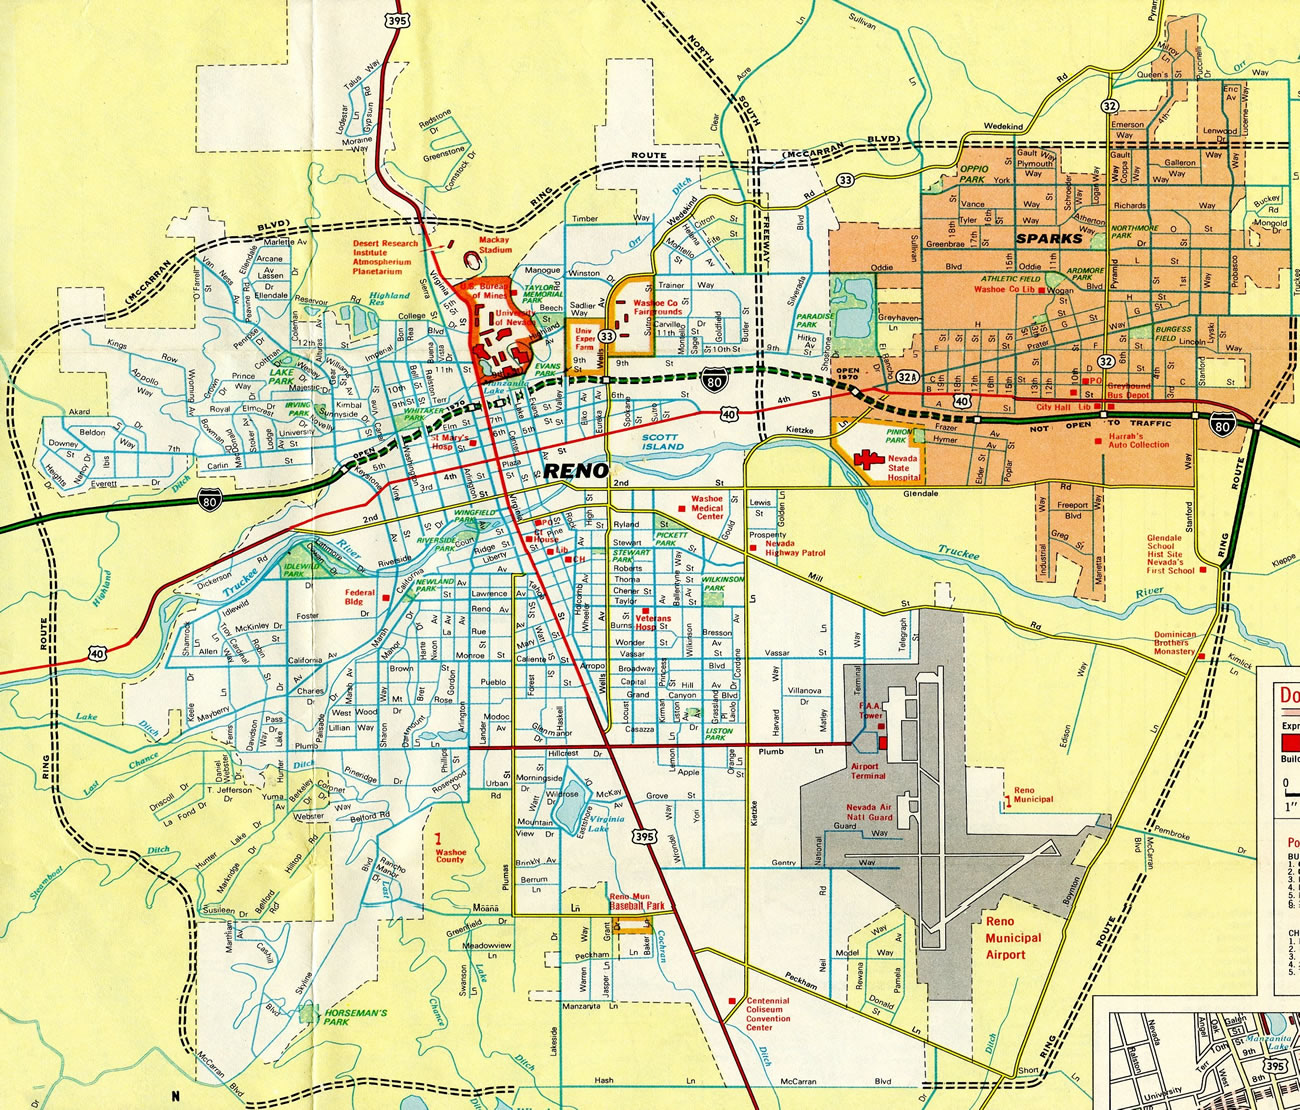 Street Map Of Sparks Nv Insurance On Cars - Street map of reno nv